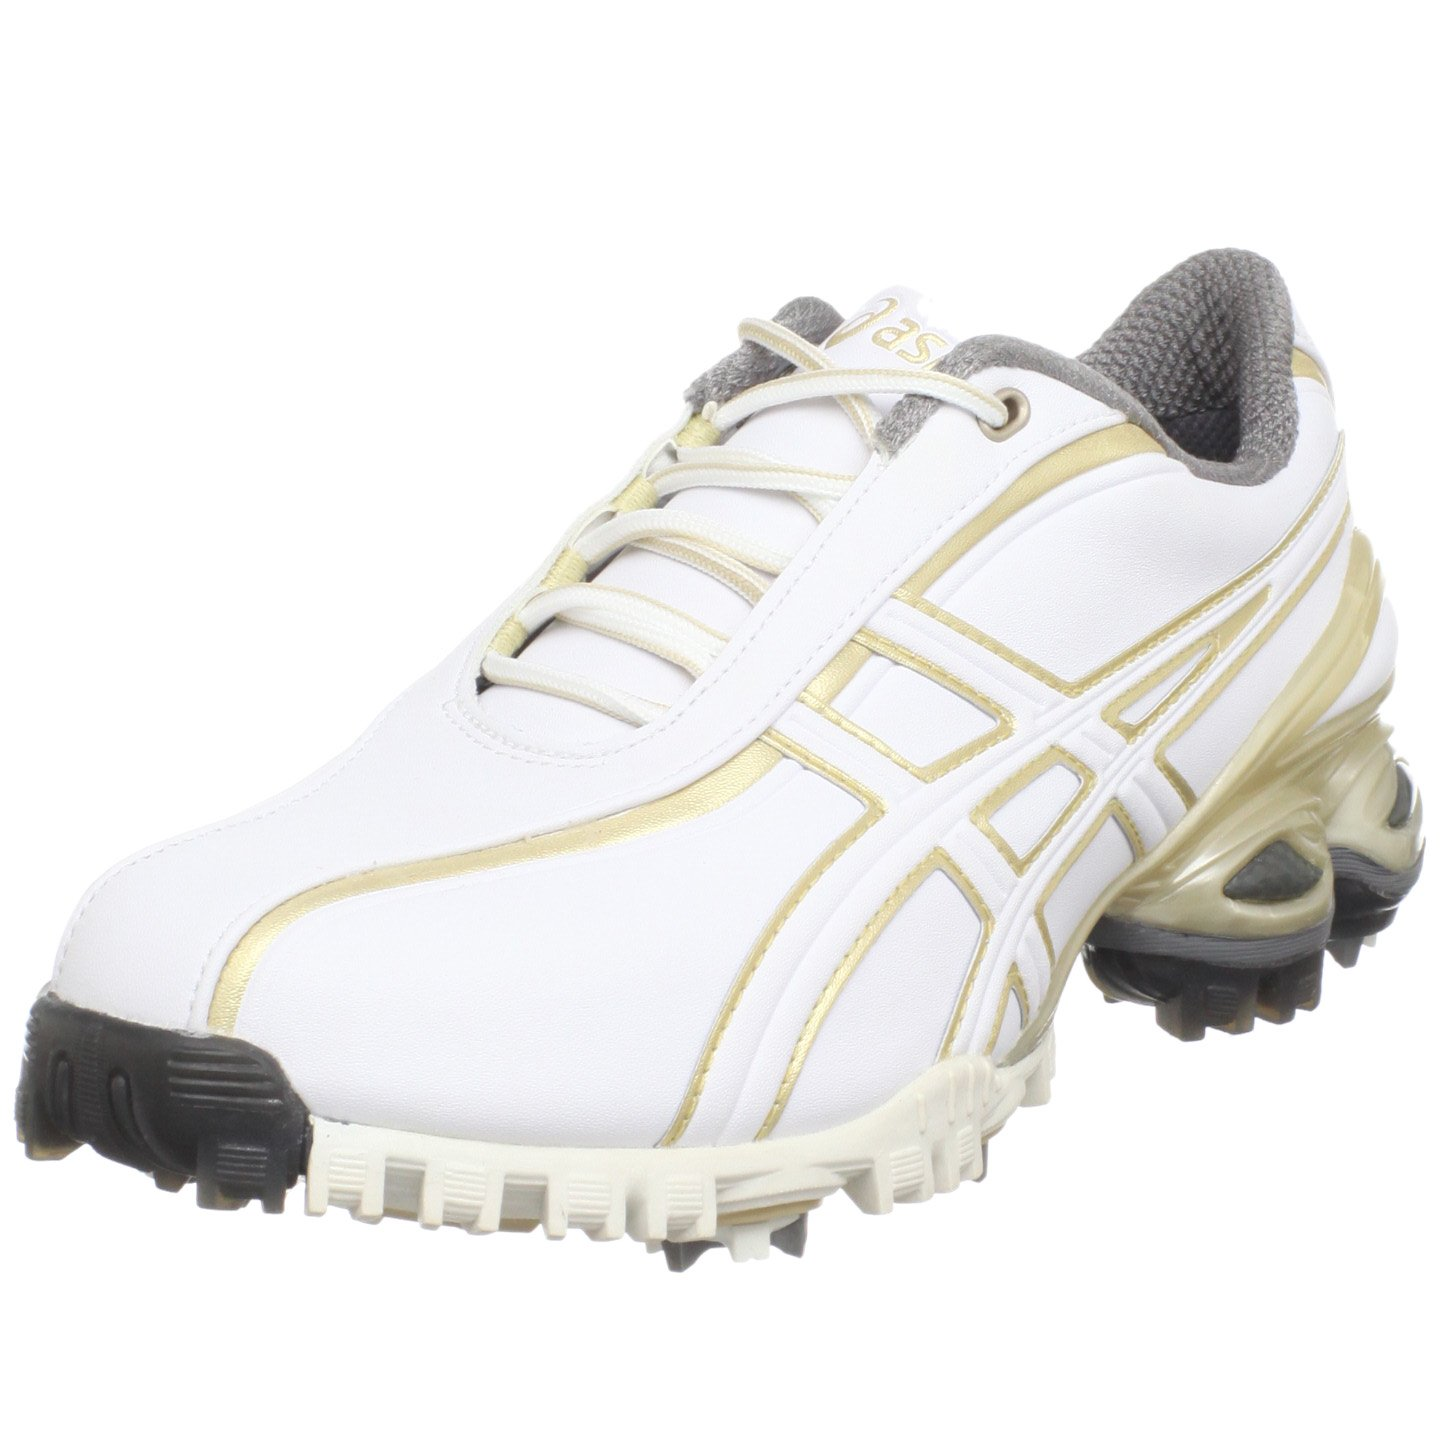 ASICS Women's Lady GEL-Ace Golf Shoe,White/Champagne Gold,6 M US by ASICS